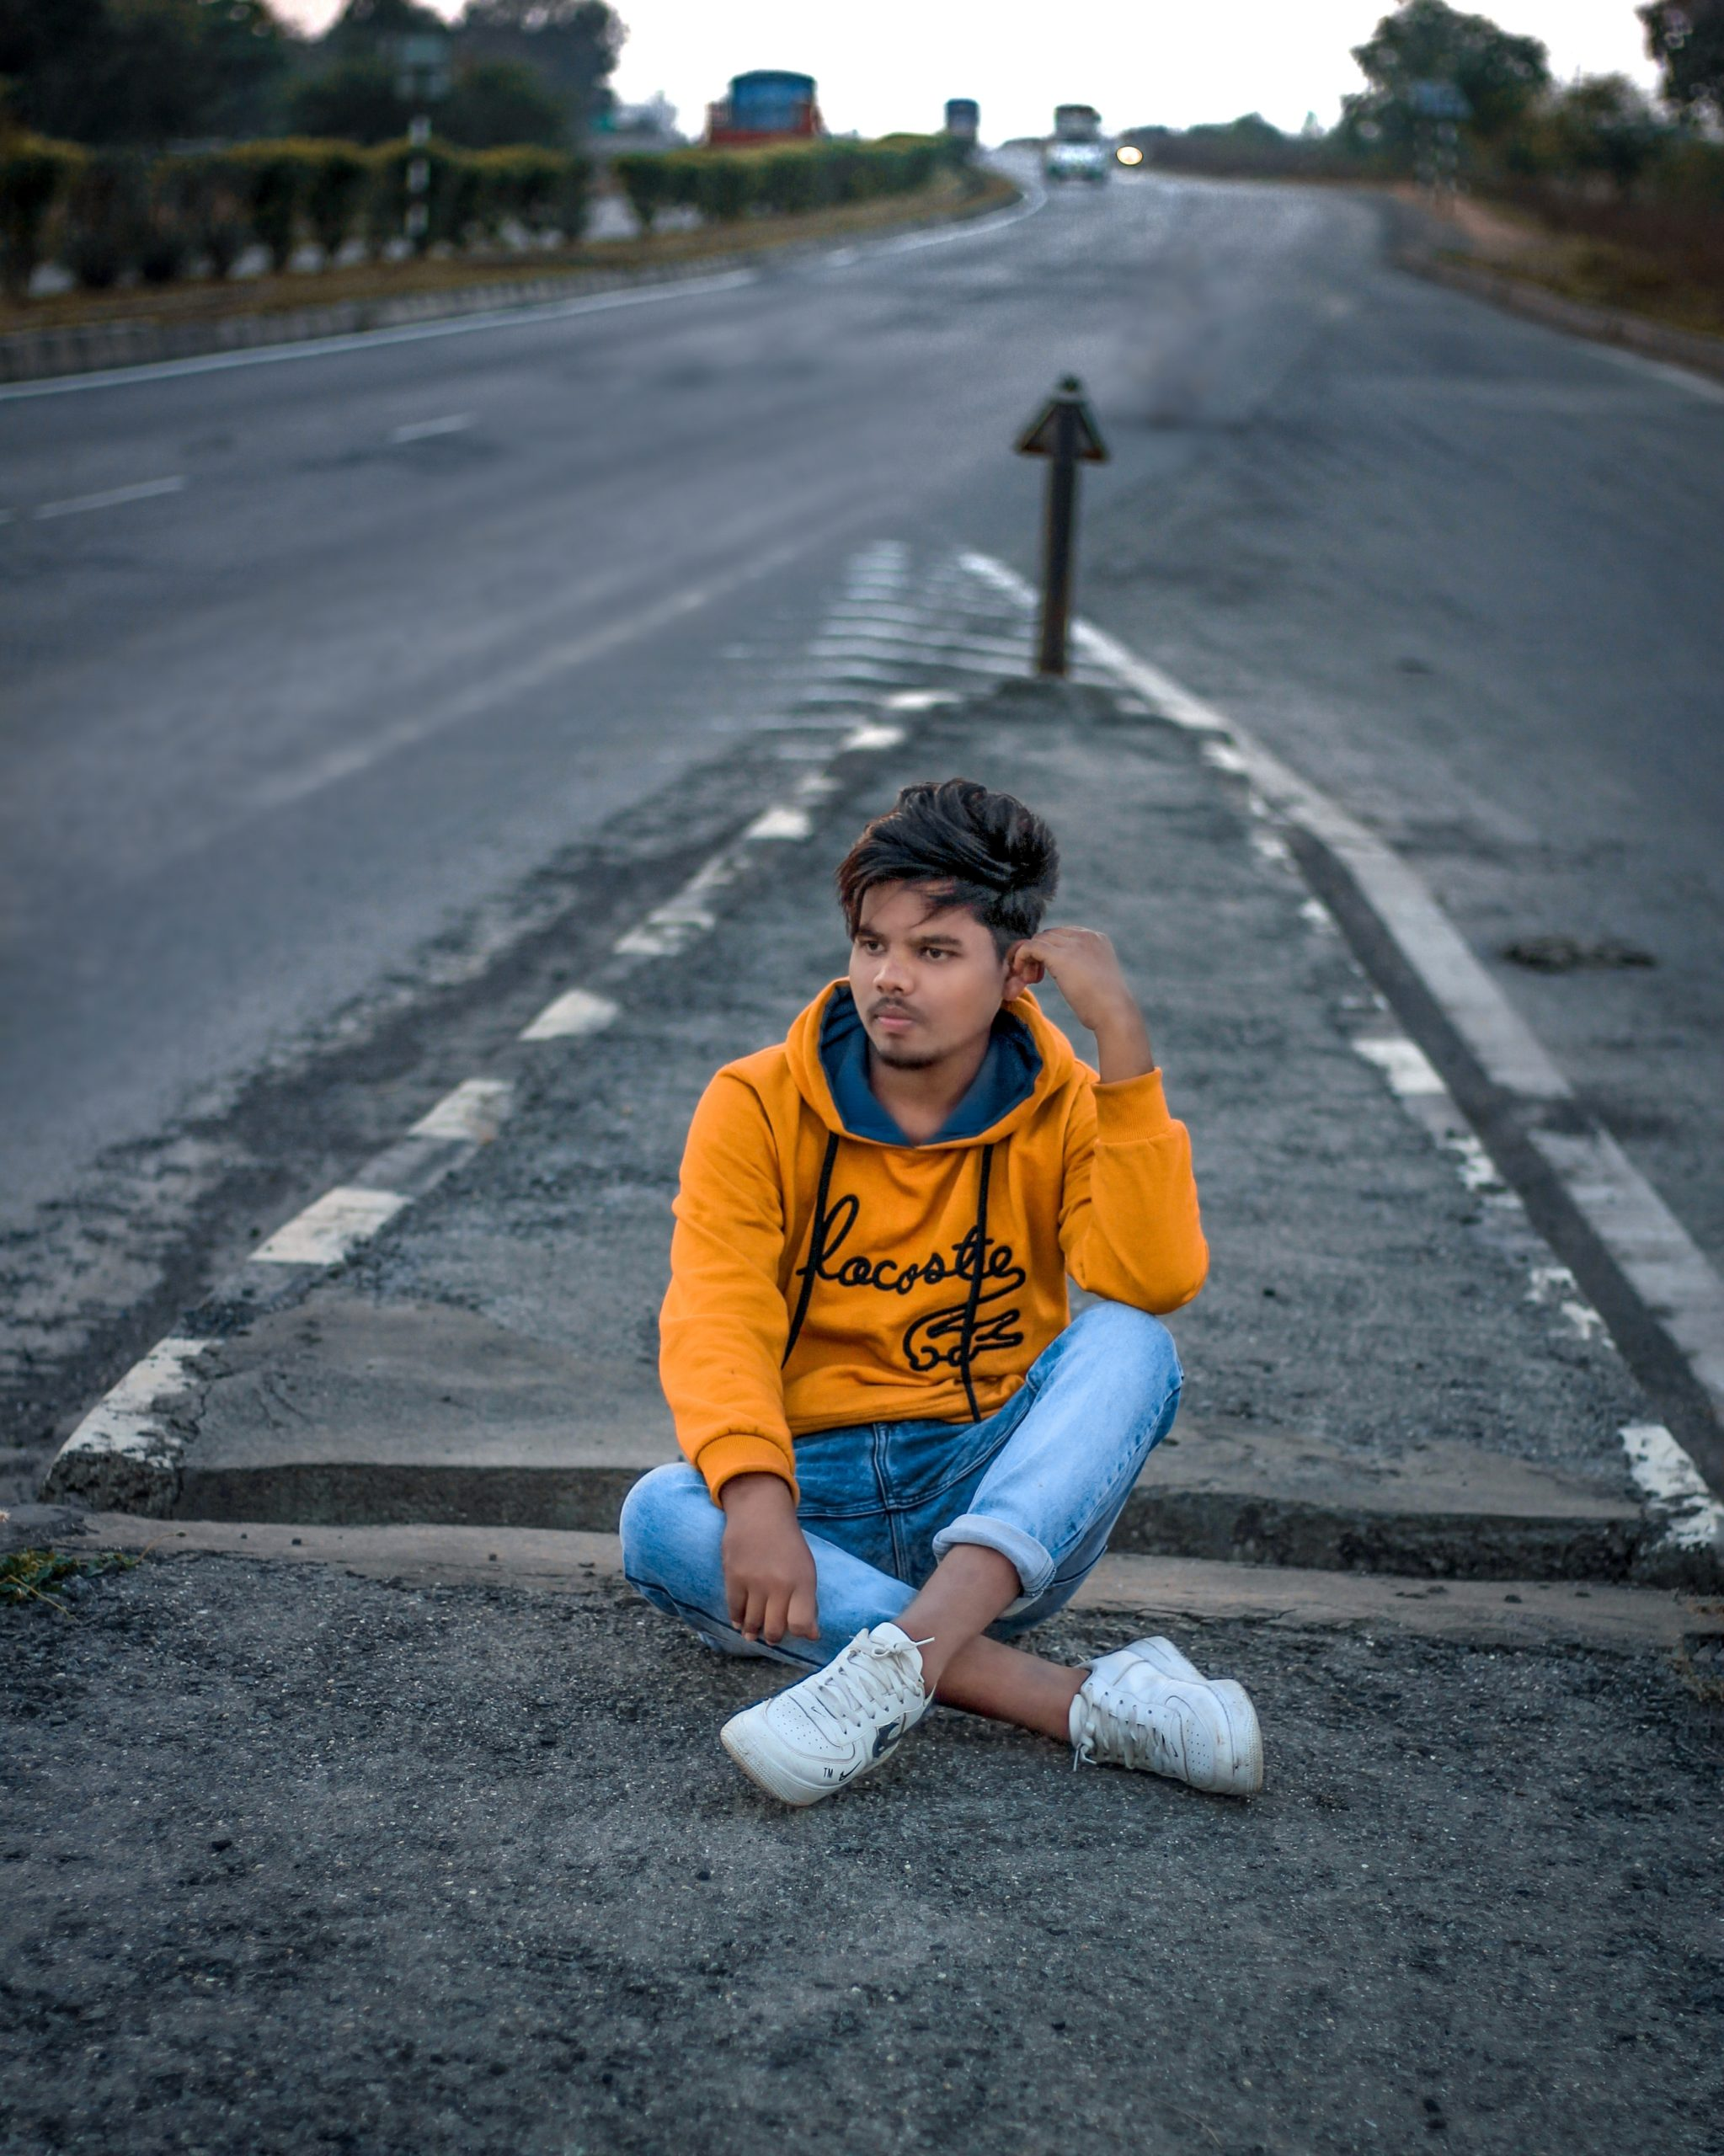 A boy sit on a road